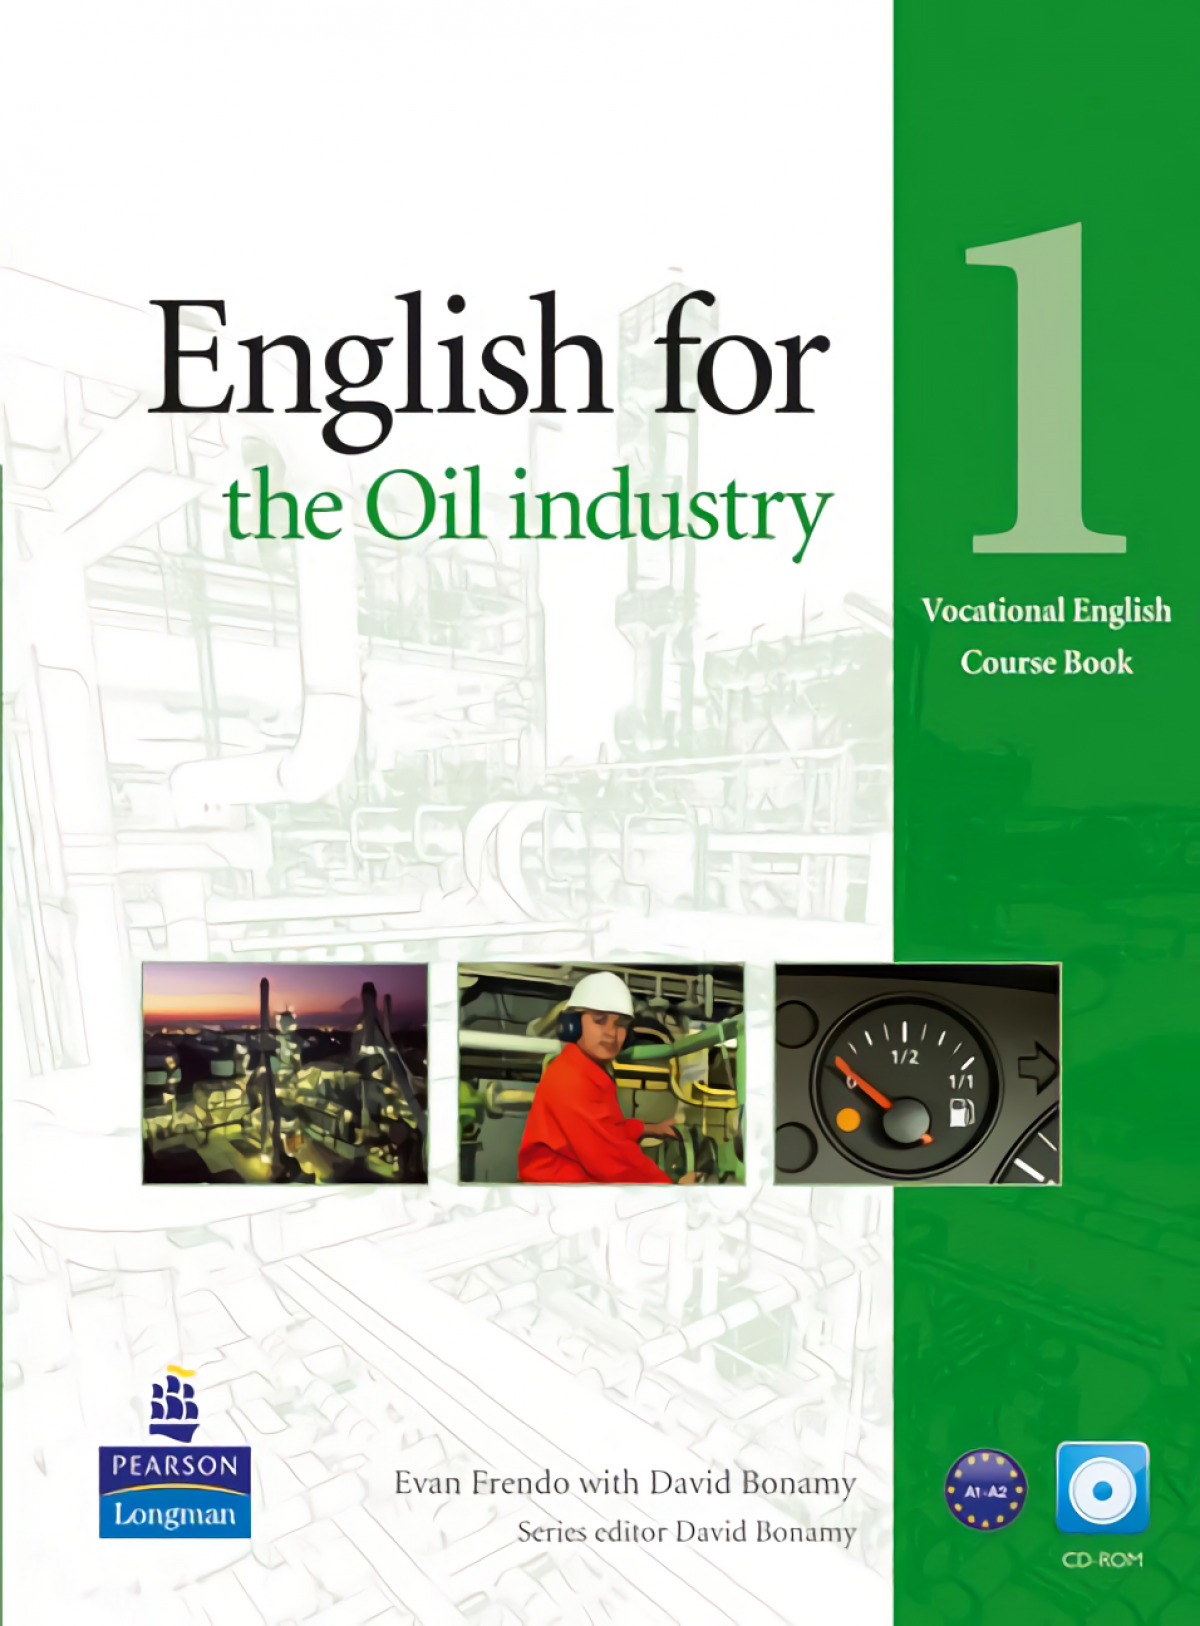 English for the oil industry 1 - Vv.Aa